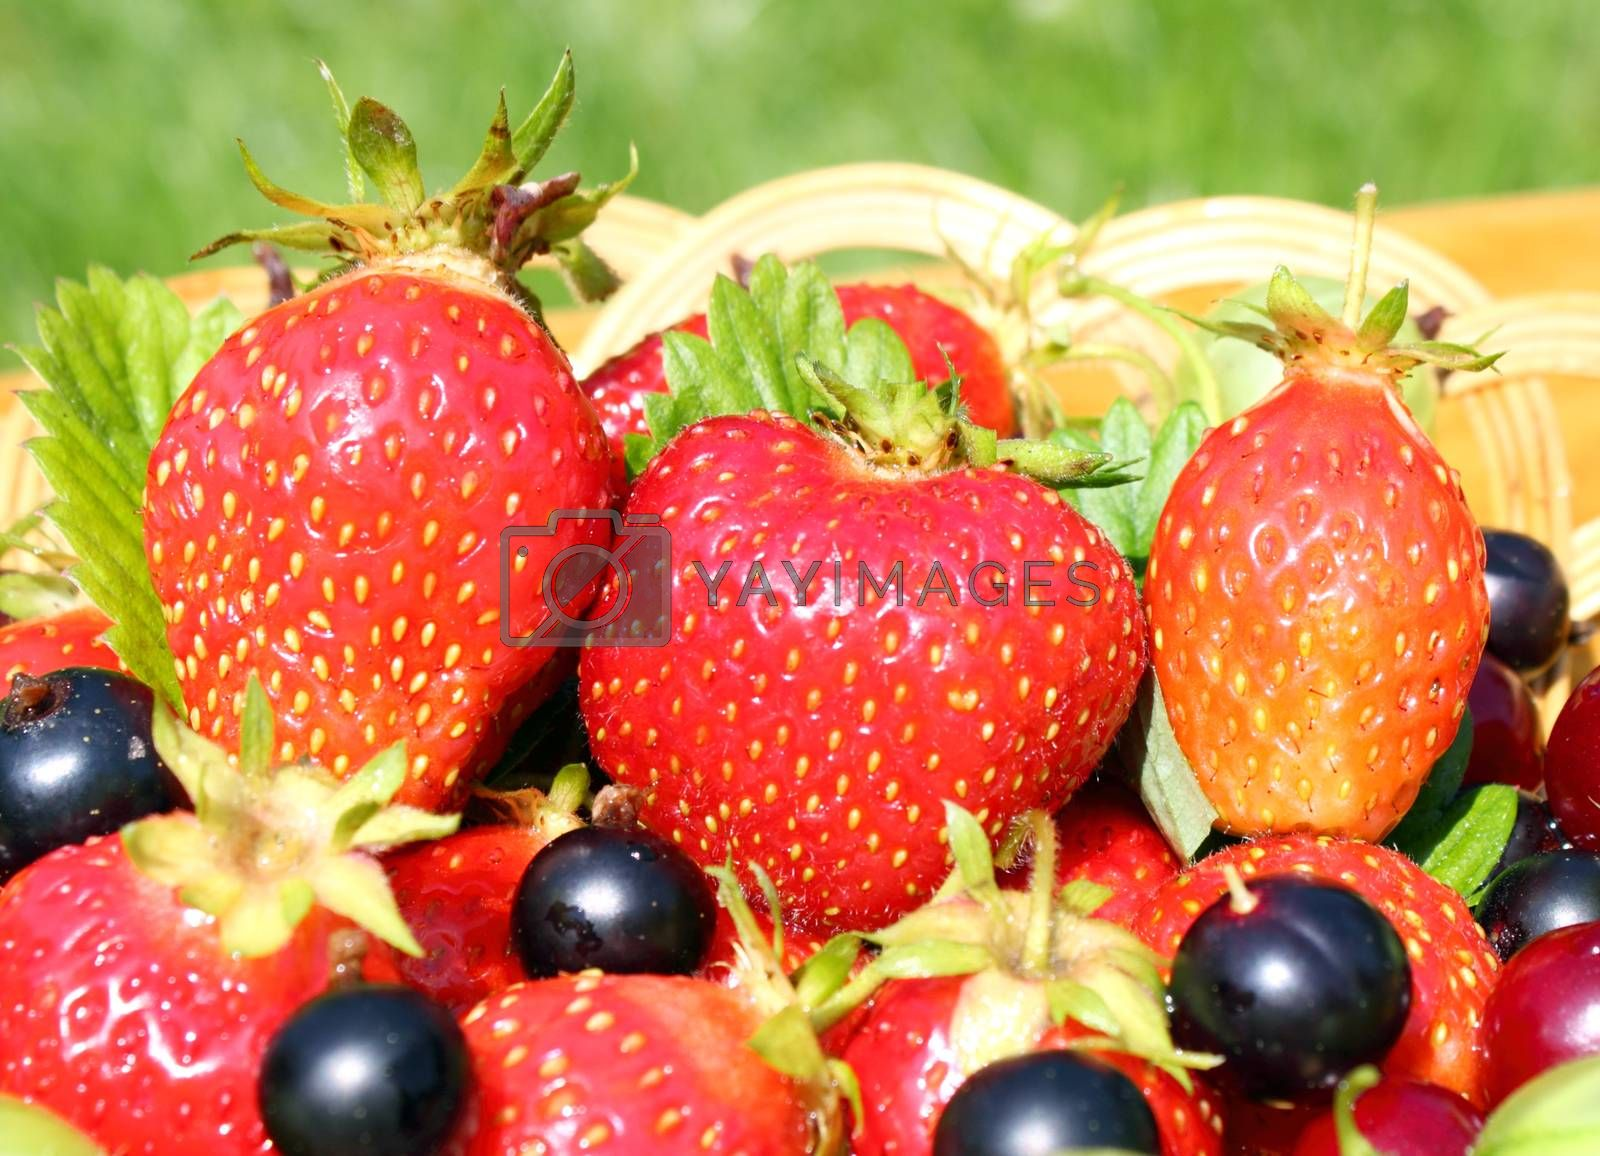 Royalty free image of Ripe berries by openas